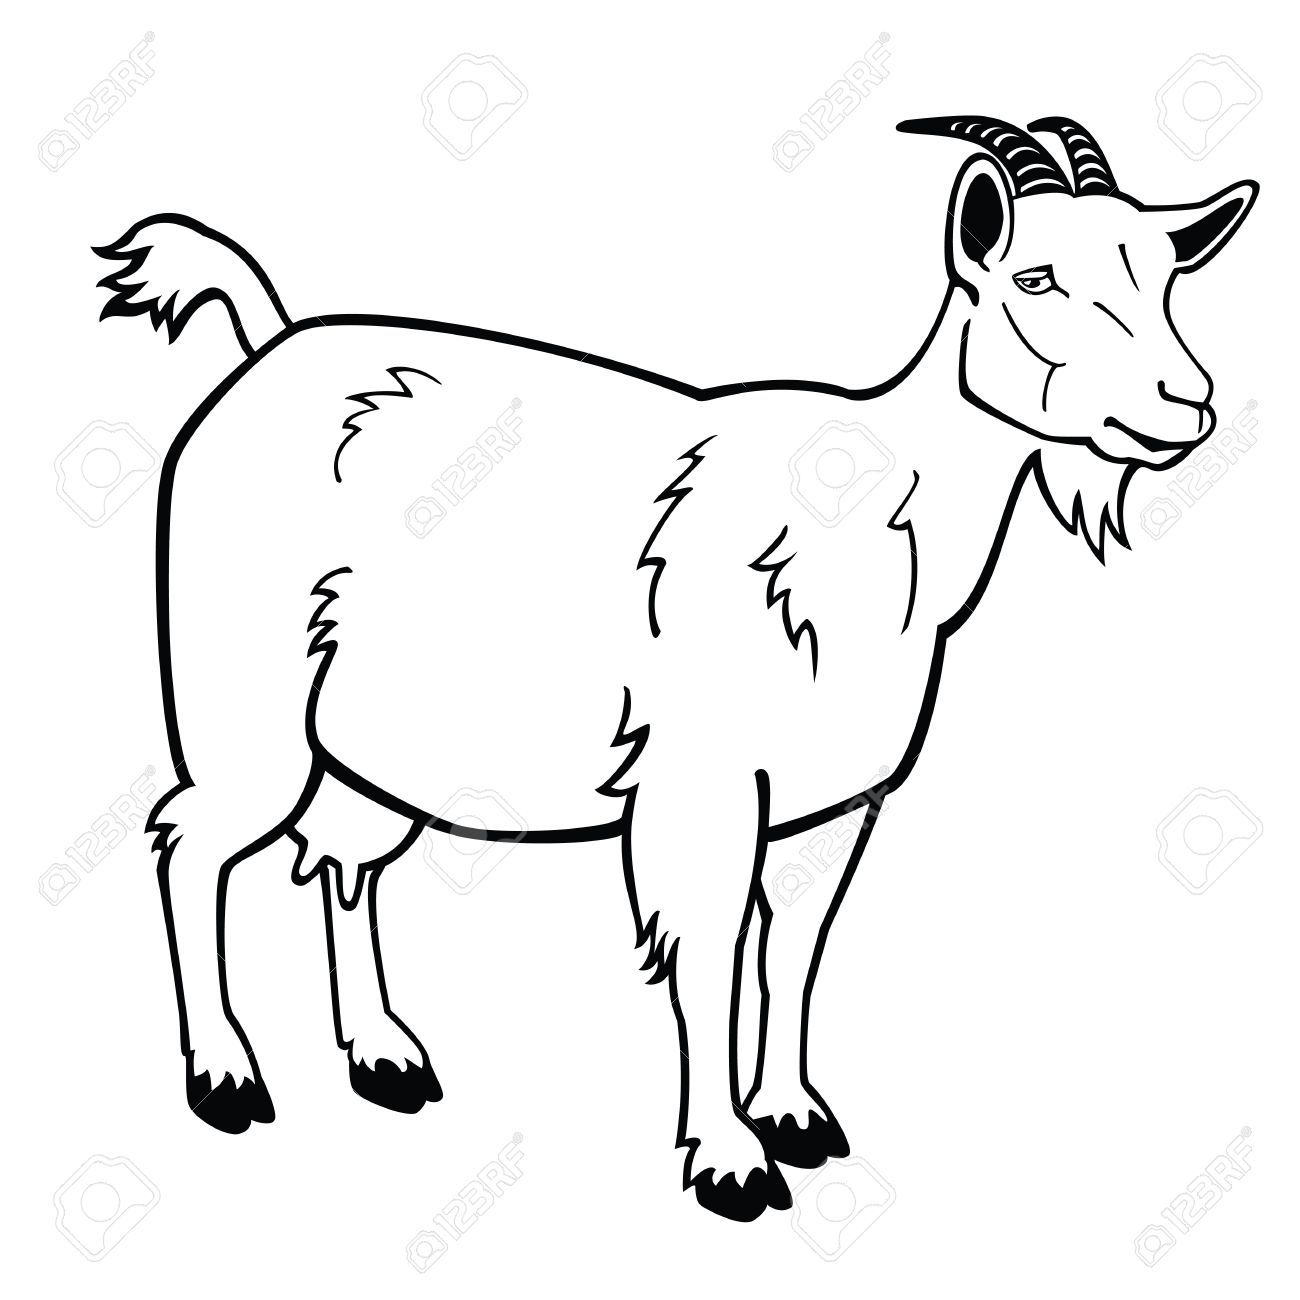 Black and white goat clipart vector black and white stock Black and white goat clipart 5 » Clipart Portal vector black and white stock